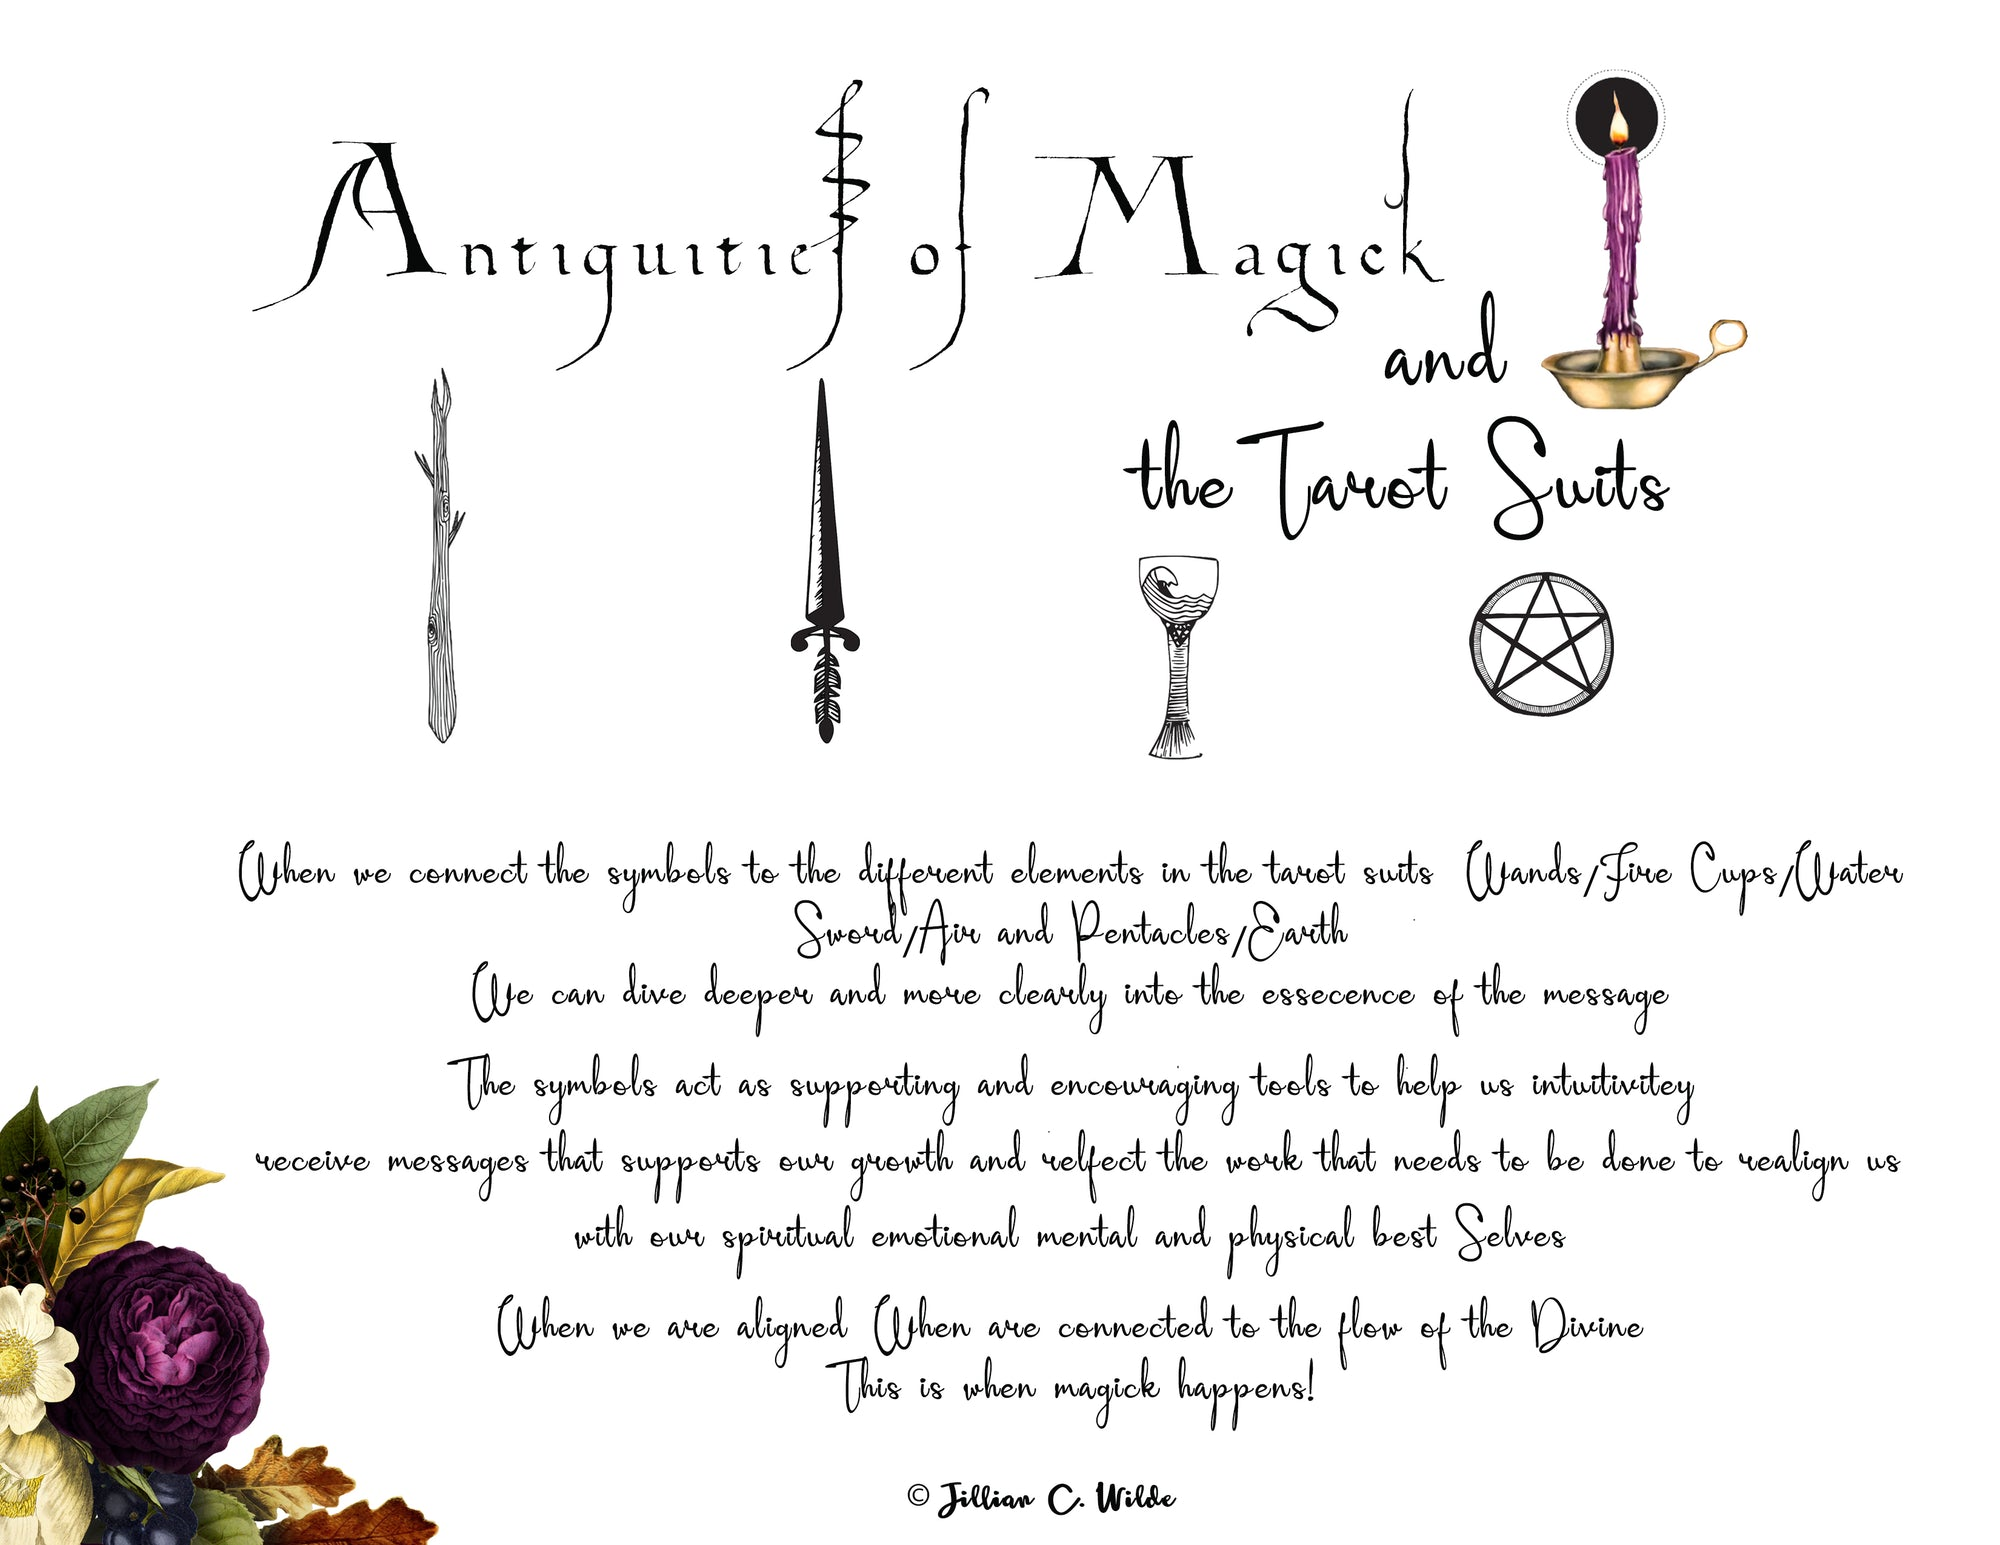 Antiquities of Magick & Tarot Suits EBOOK (Phone, iPad)